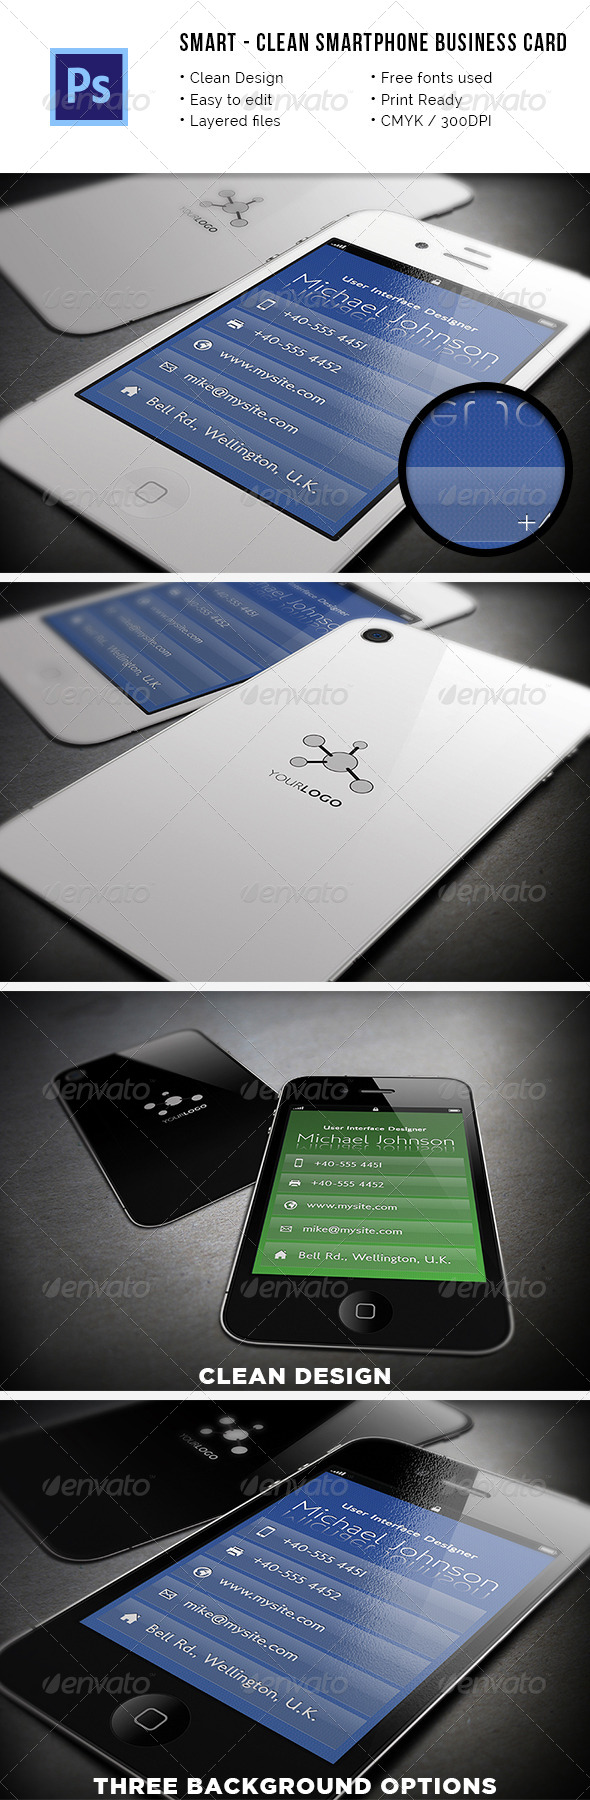 Smart - Clean Smartphone Business Card - Real Objects Business Cards